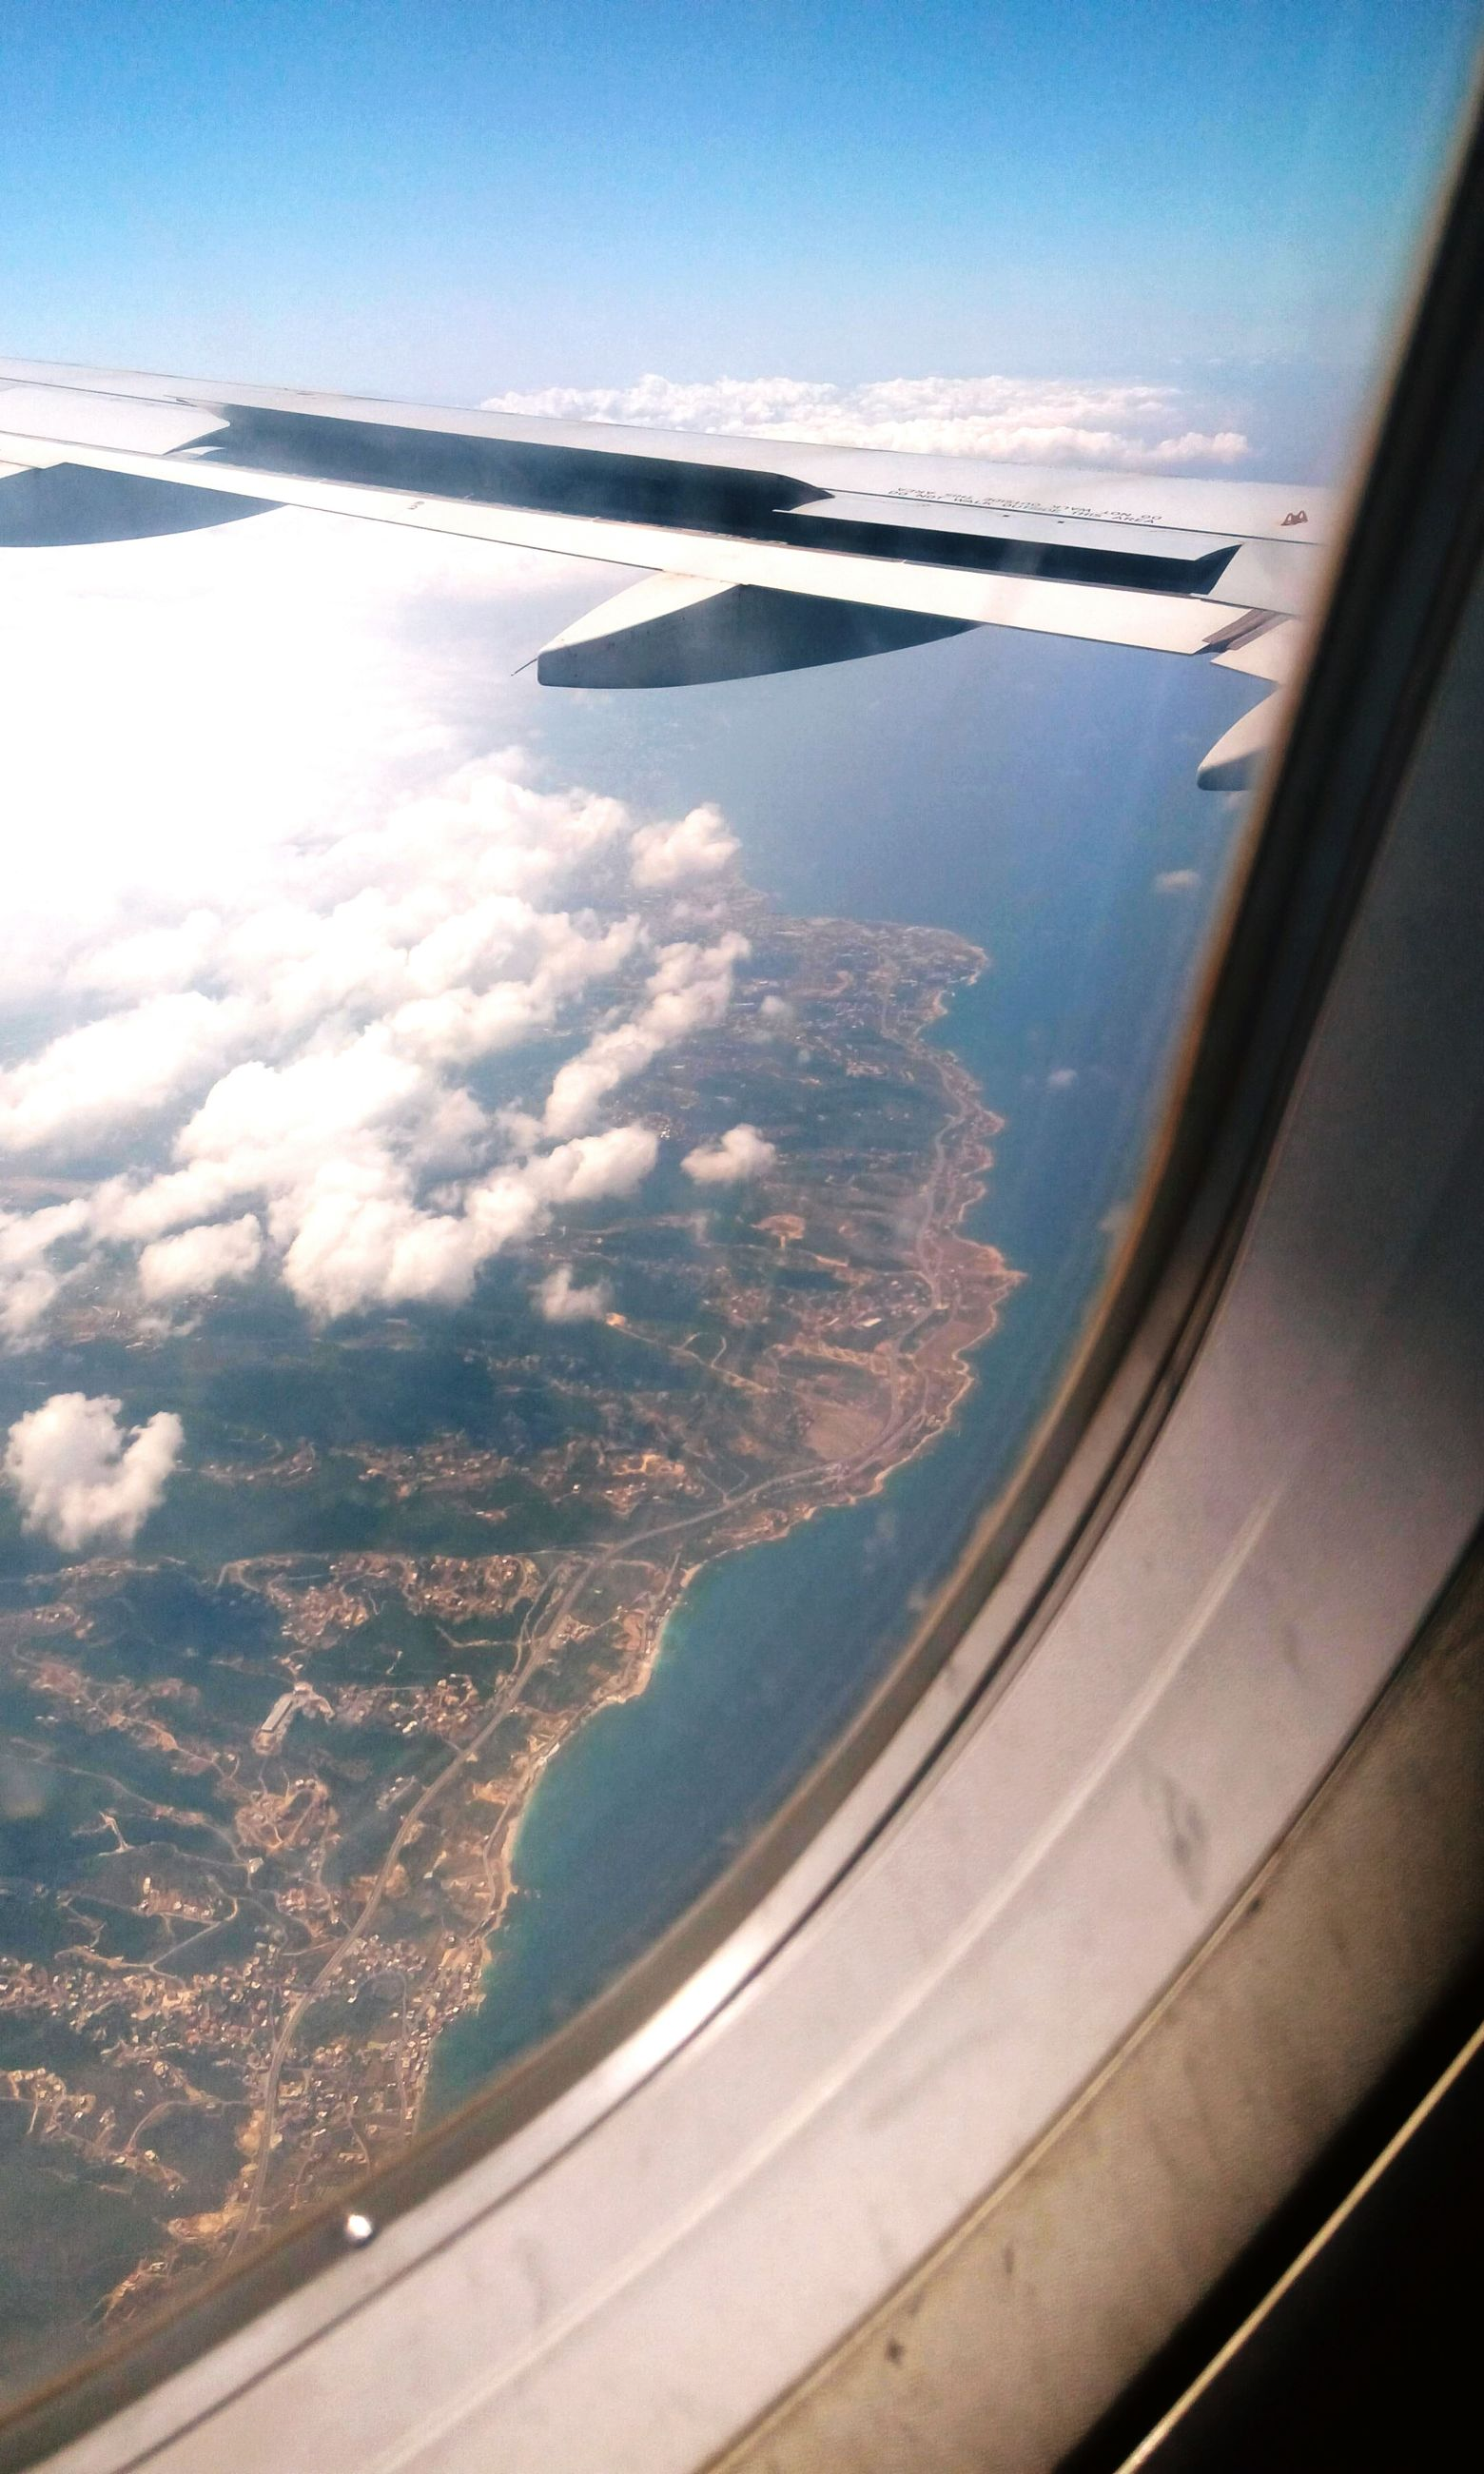 aerial view, airplane, transportation, airplane wing, beauty in nature, nature, scenics, journey, window, vehicle part, landscape, no people, aircraft wing, air vehicle, mode of transport, travel, flying, day, sky, mountain, mid-air, sea, outdoors, view into land, water